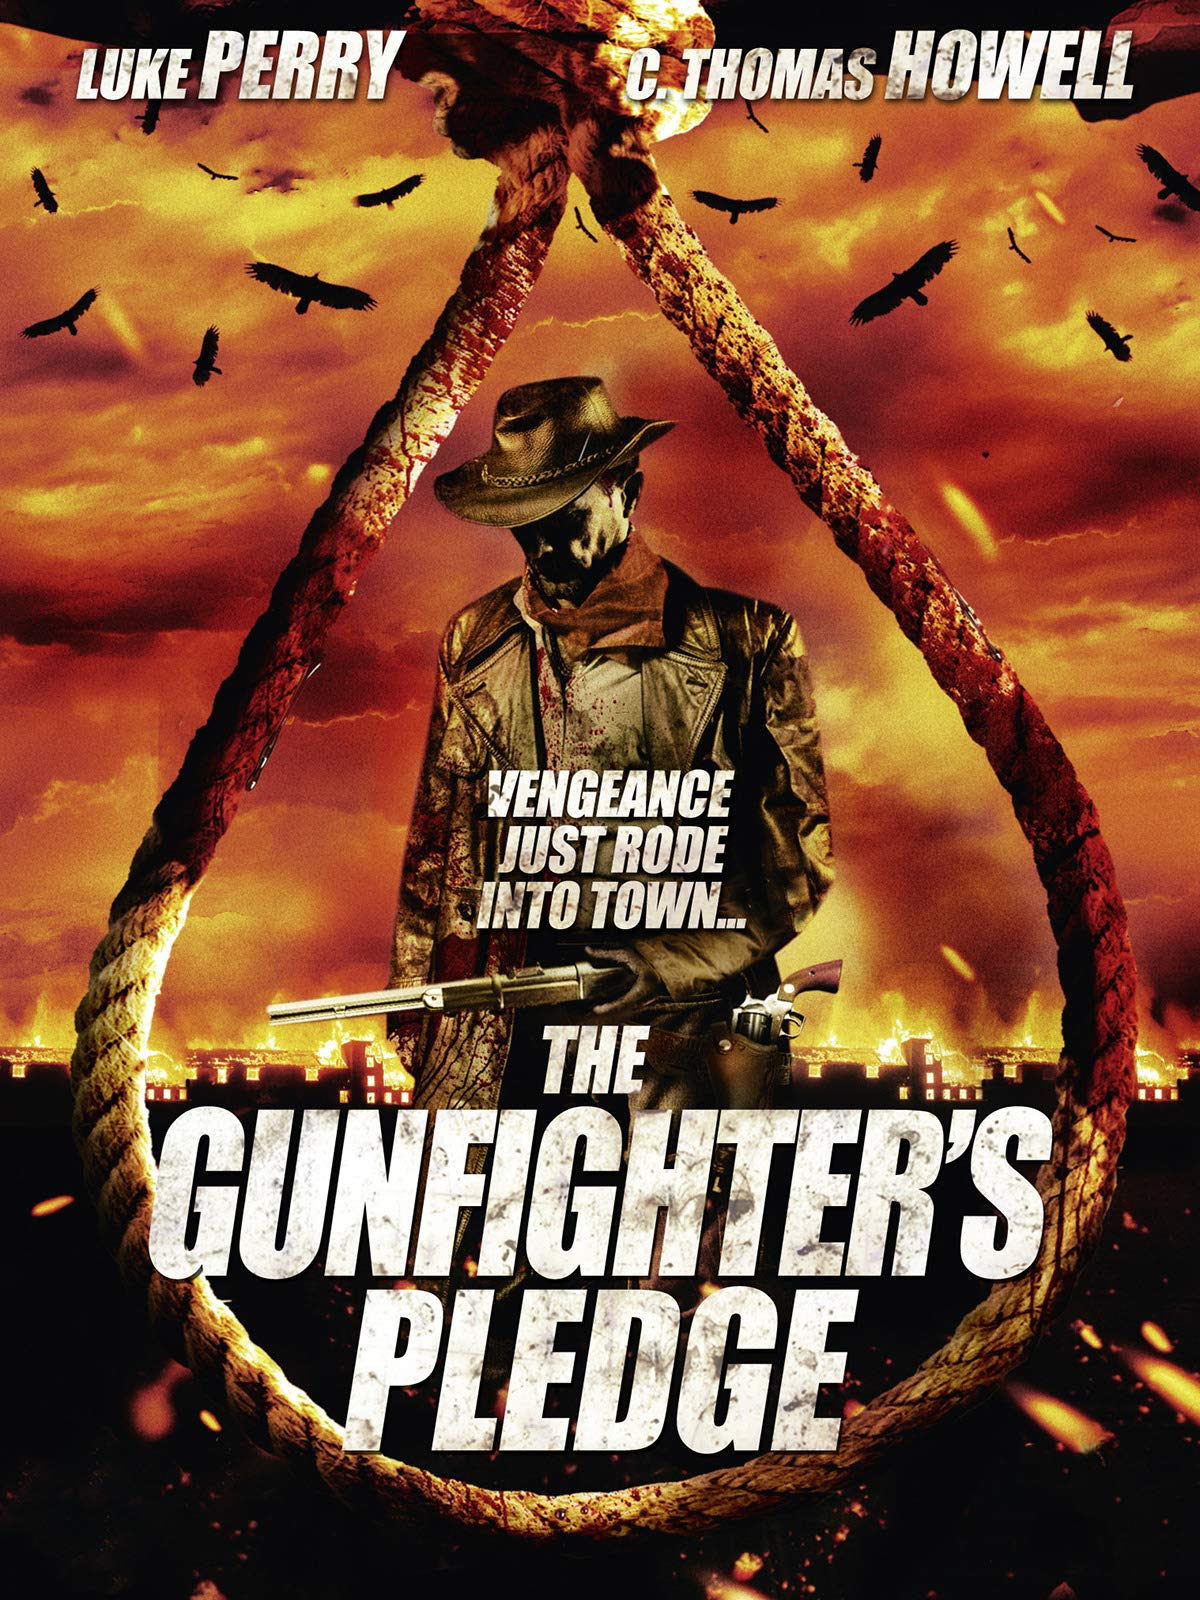 The Gunfighter's Pledge